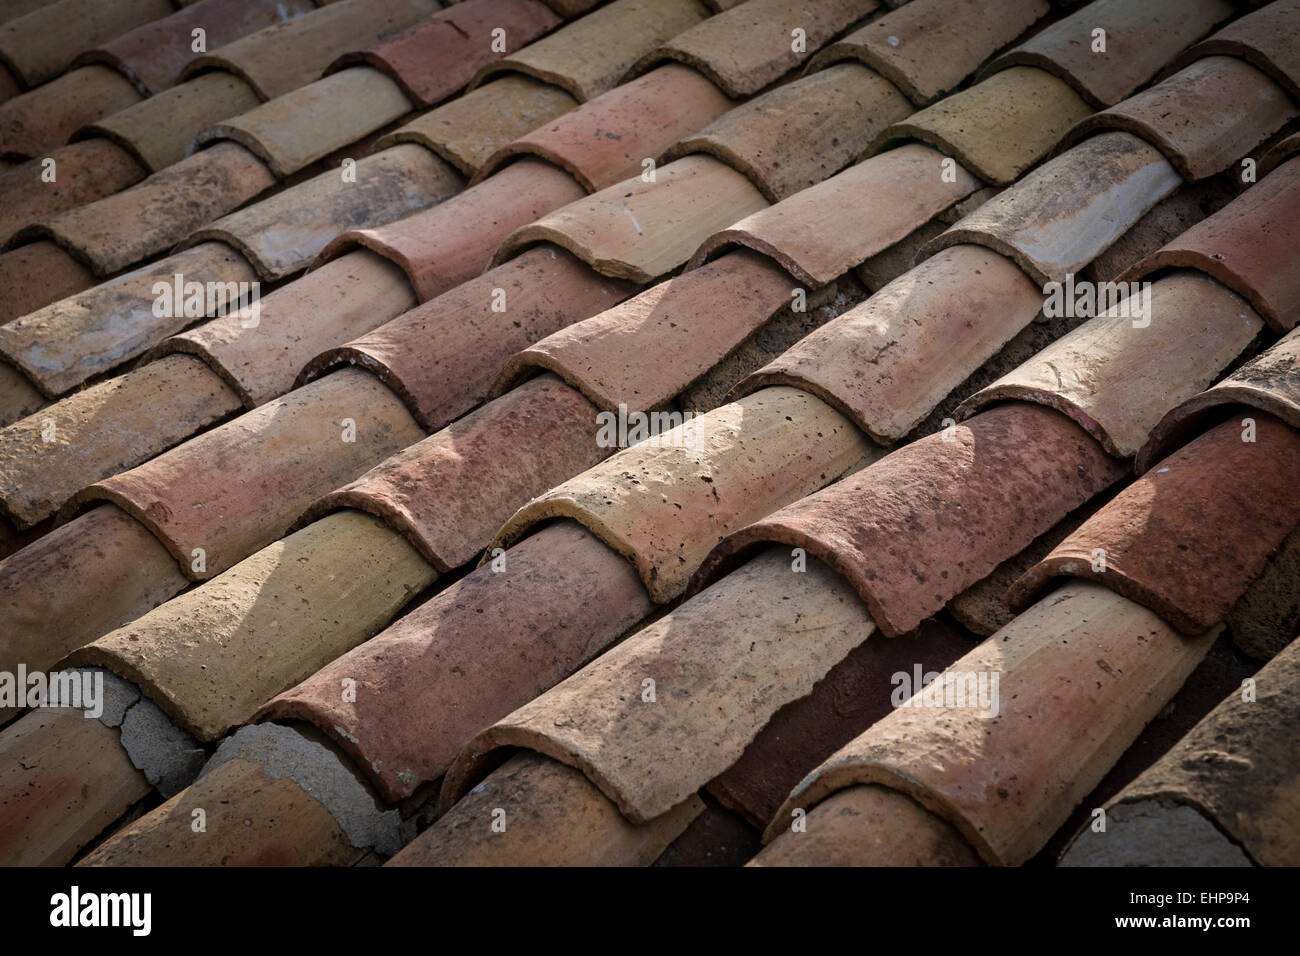 Close up of curved terracotta roof tiles andalucia spain stock close up of curved terracotta roof tiles andalucia spain dailygadgetfo Image collections